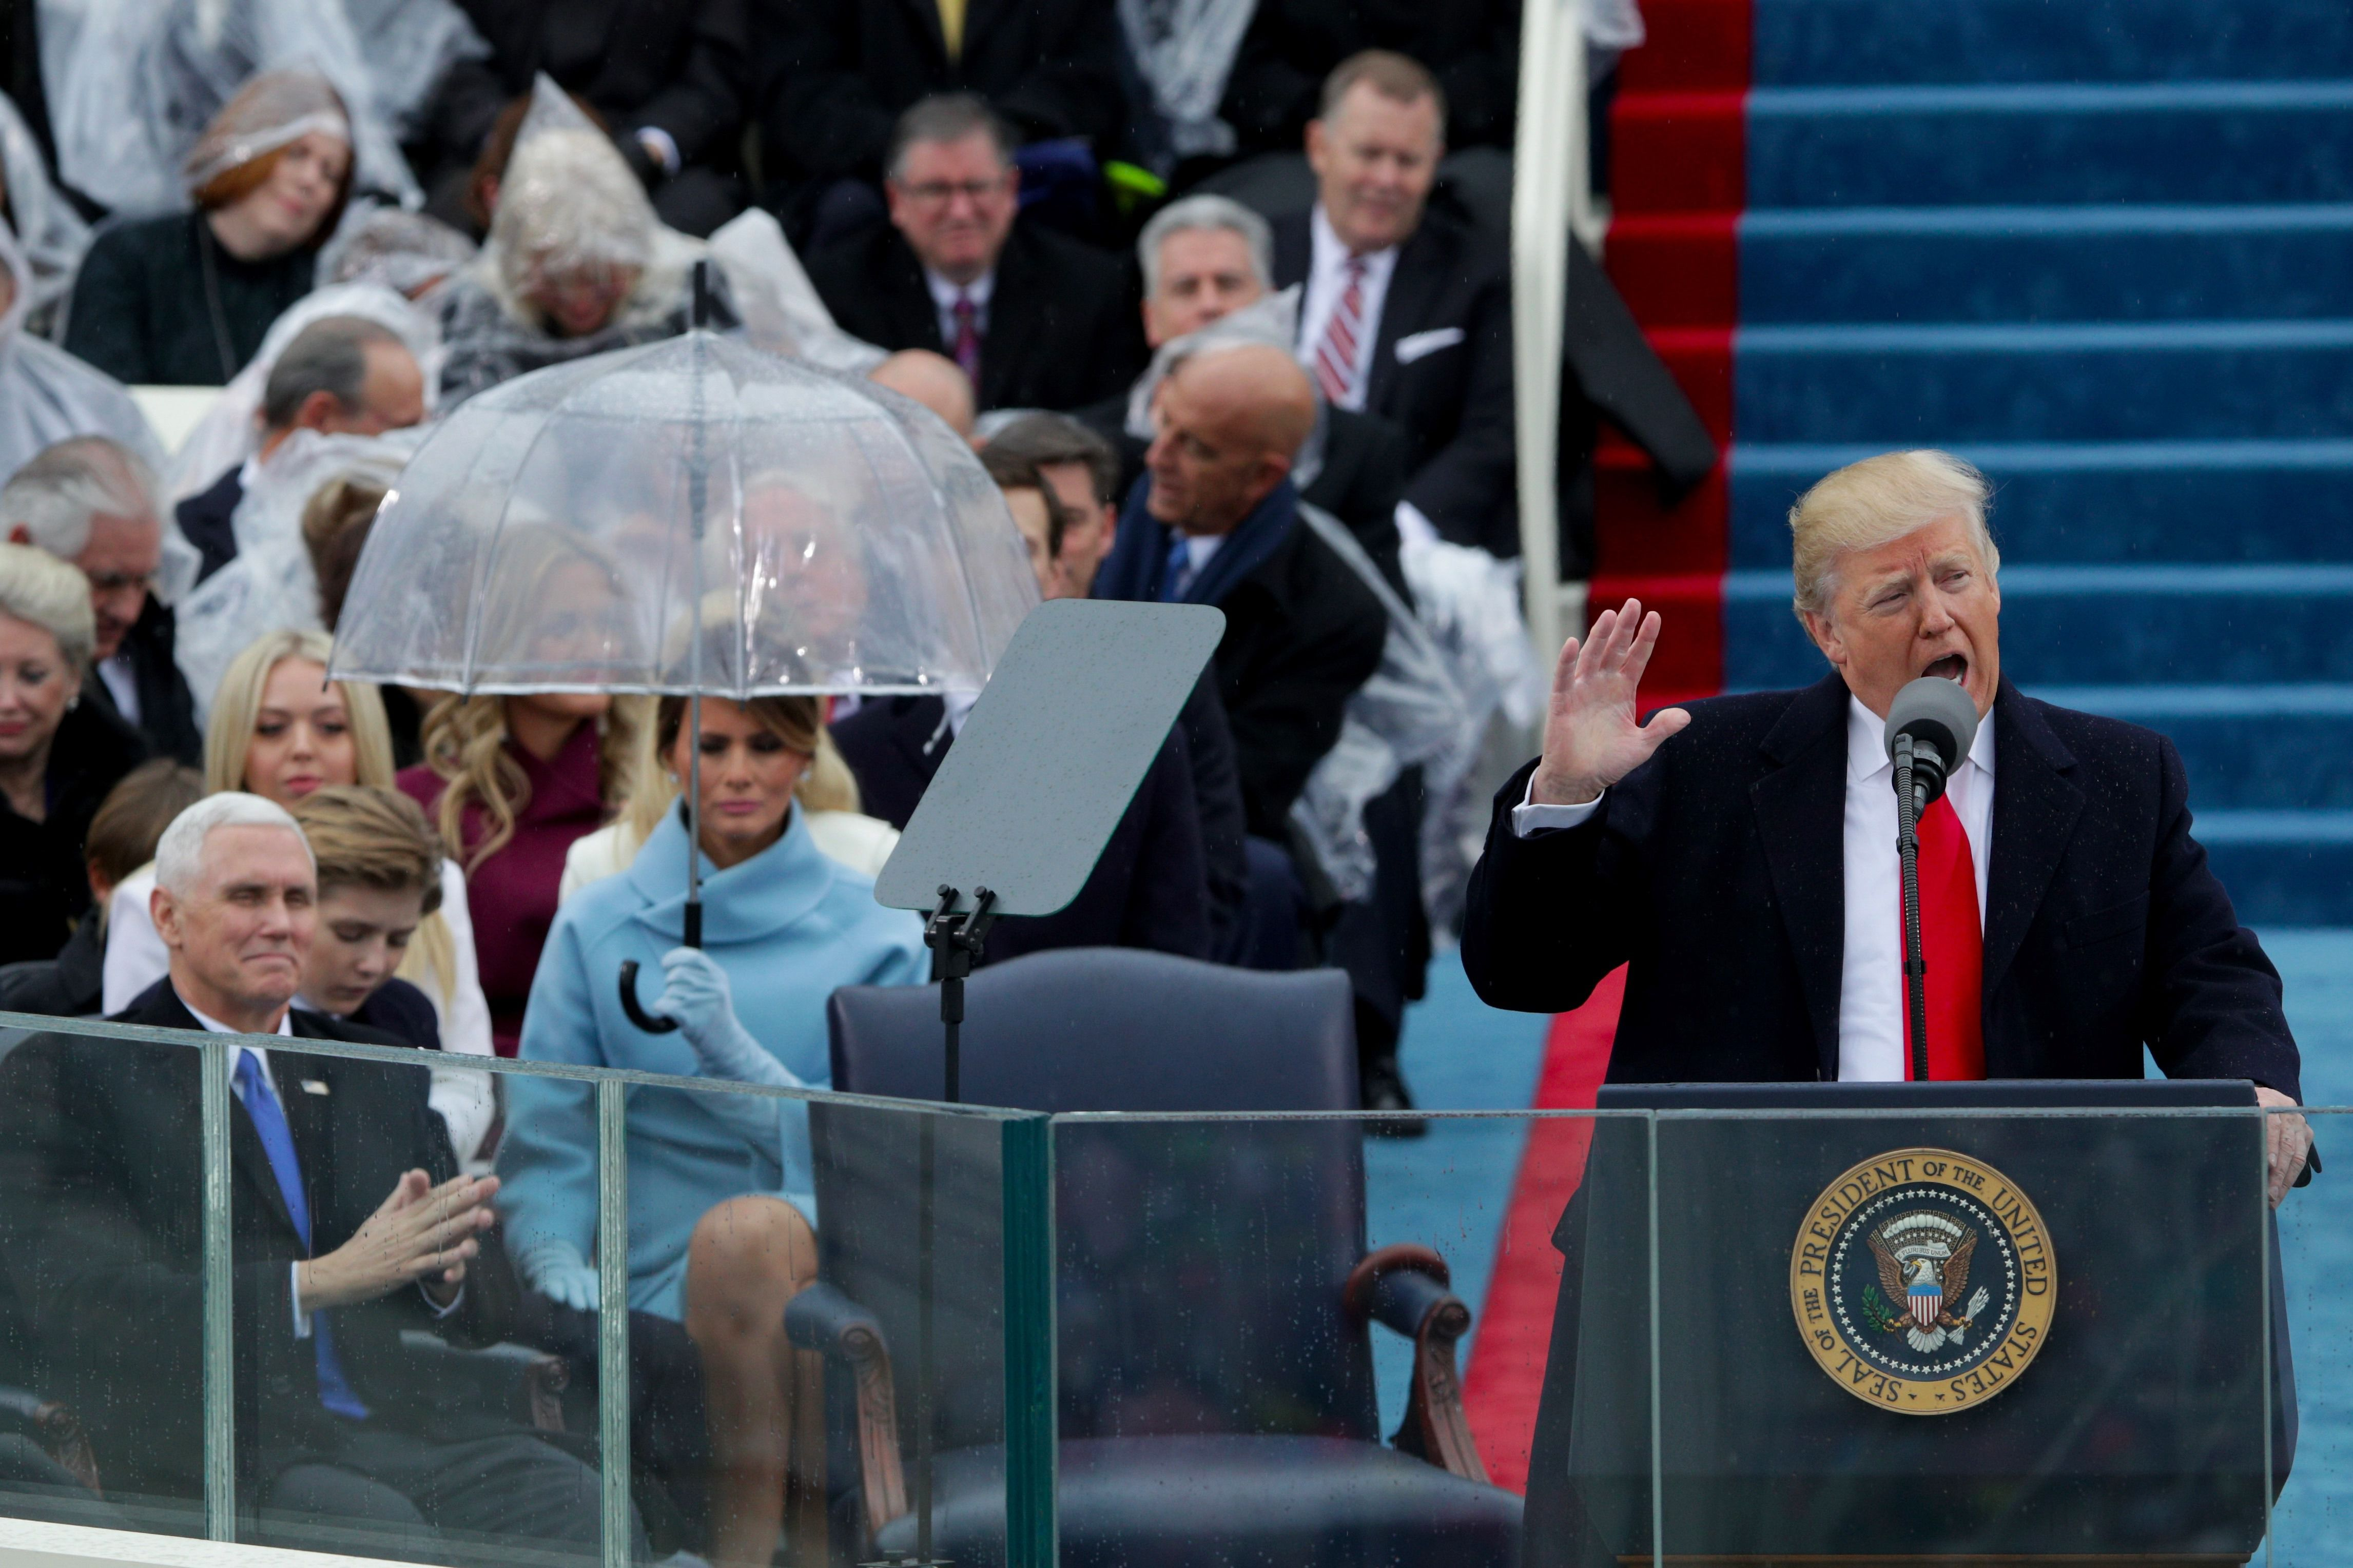 Donald Trump delivers his presidential inauguration speech, a sharp rejection of the notion that the United States places a special global leadership role.